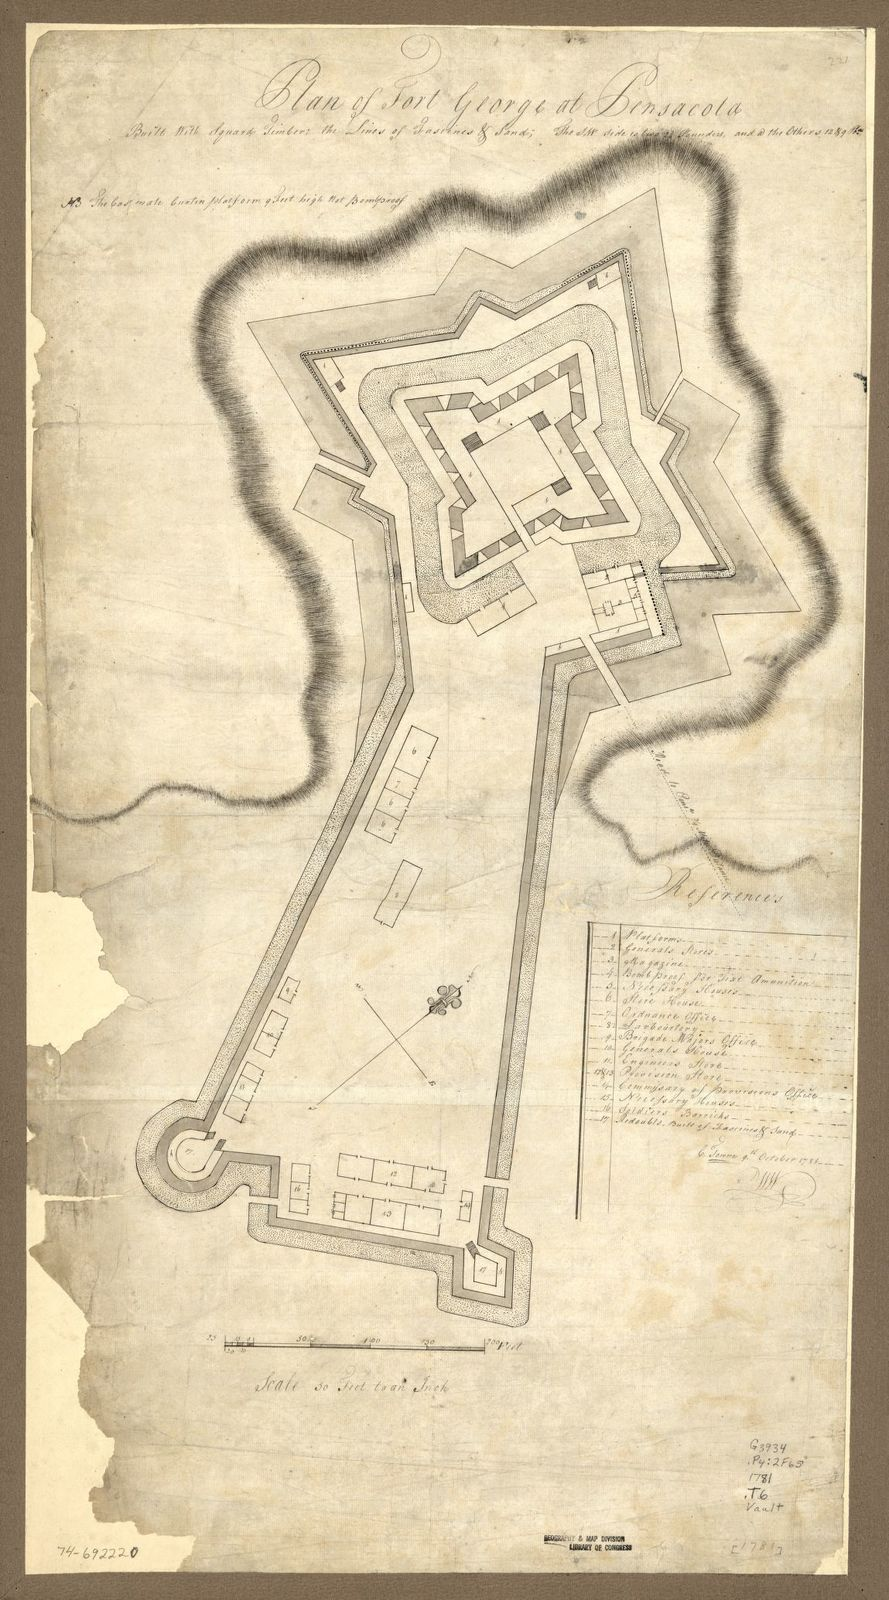 Plan of Fort George at Pensacola.